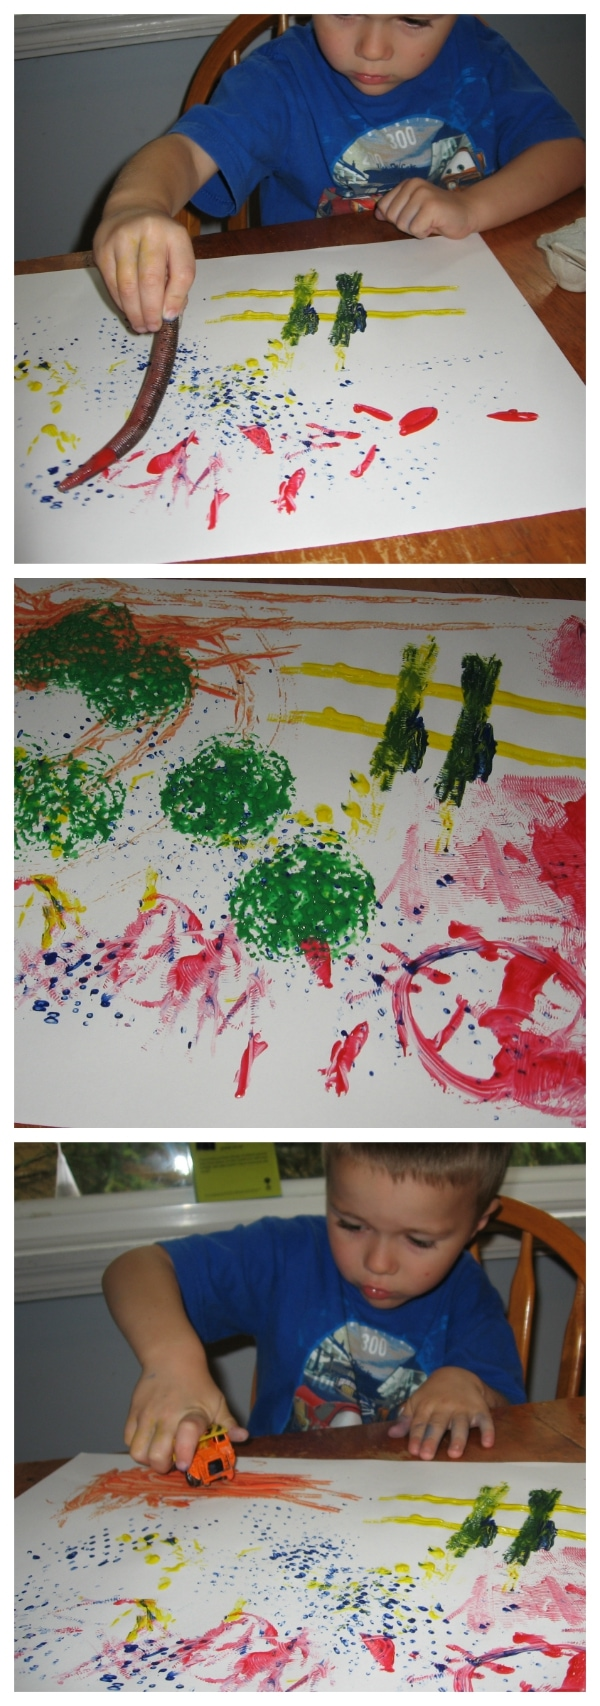 "Painting with our ""Fancy Paintbrushes"" from Walking by the Way"